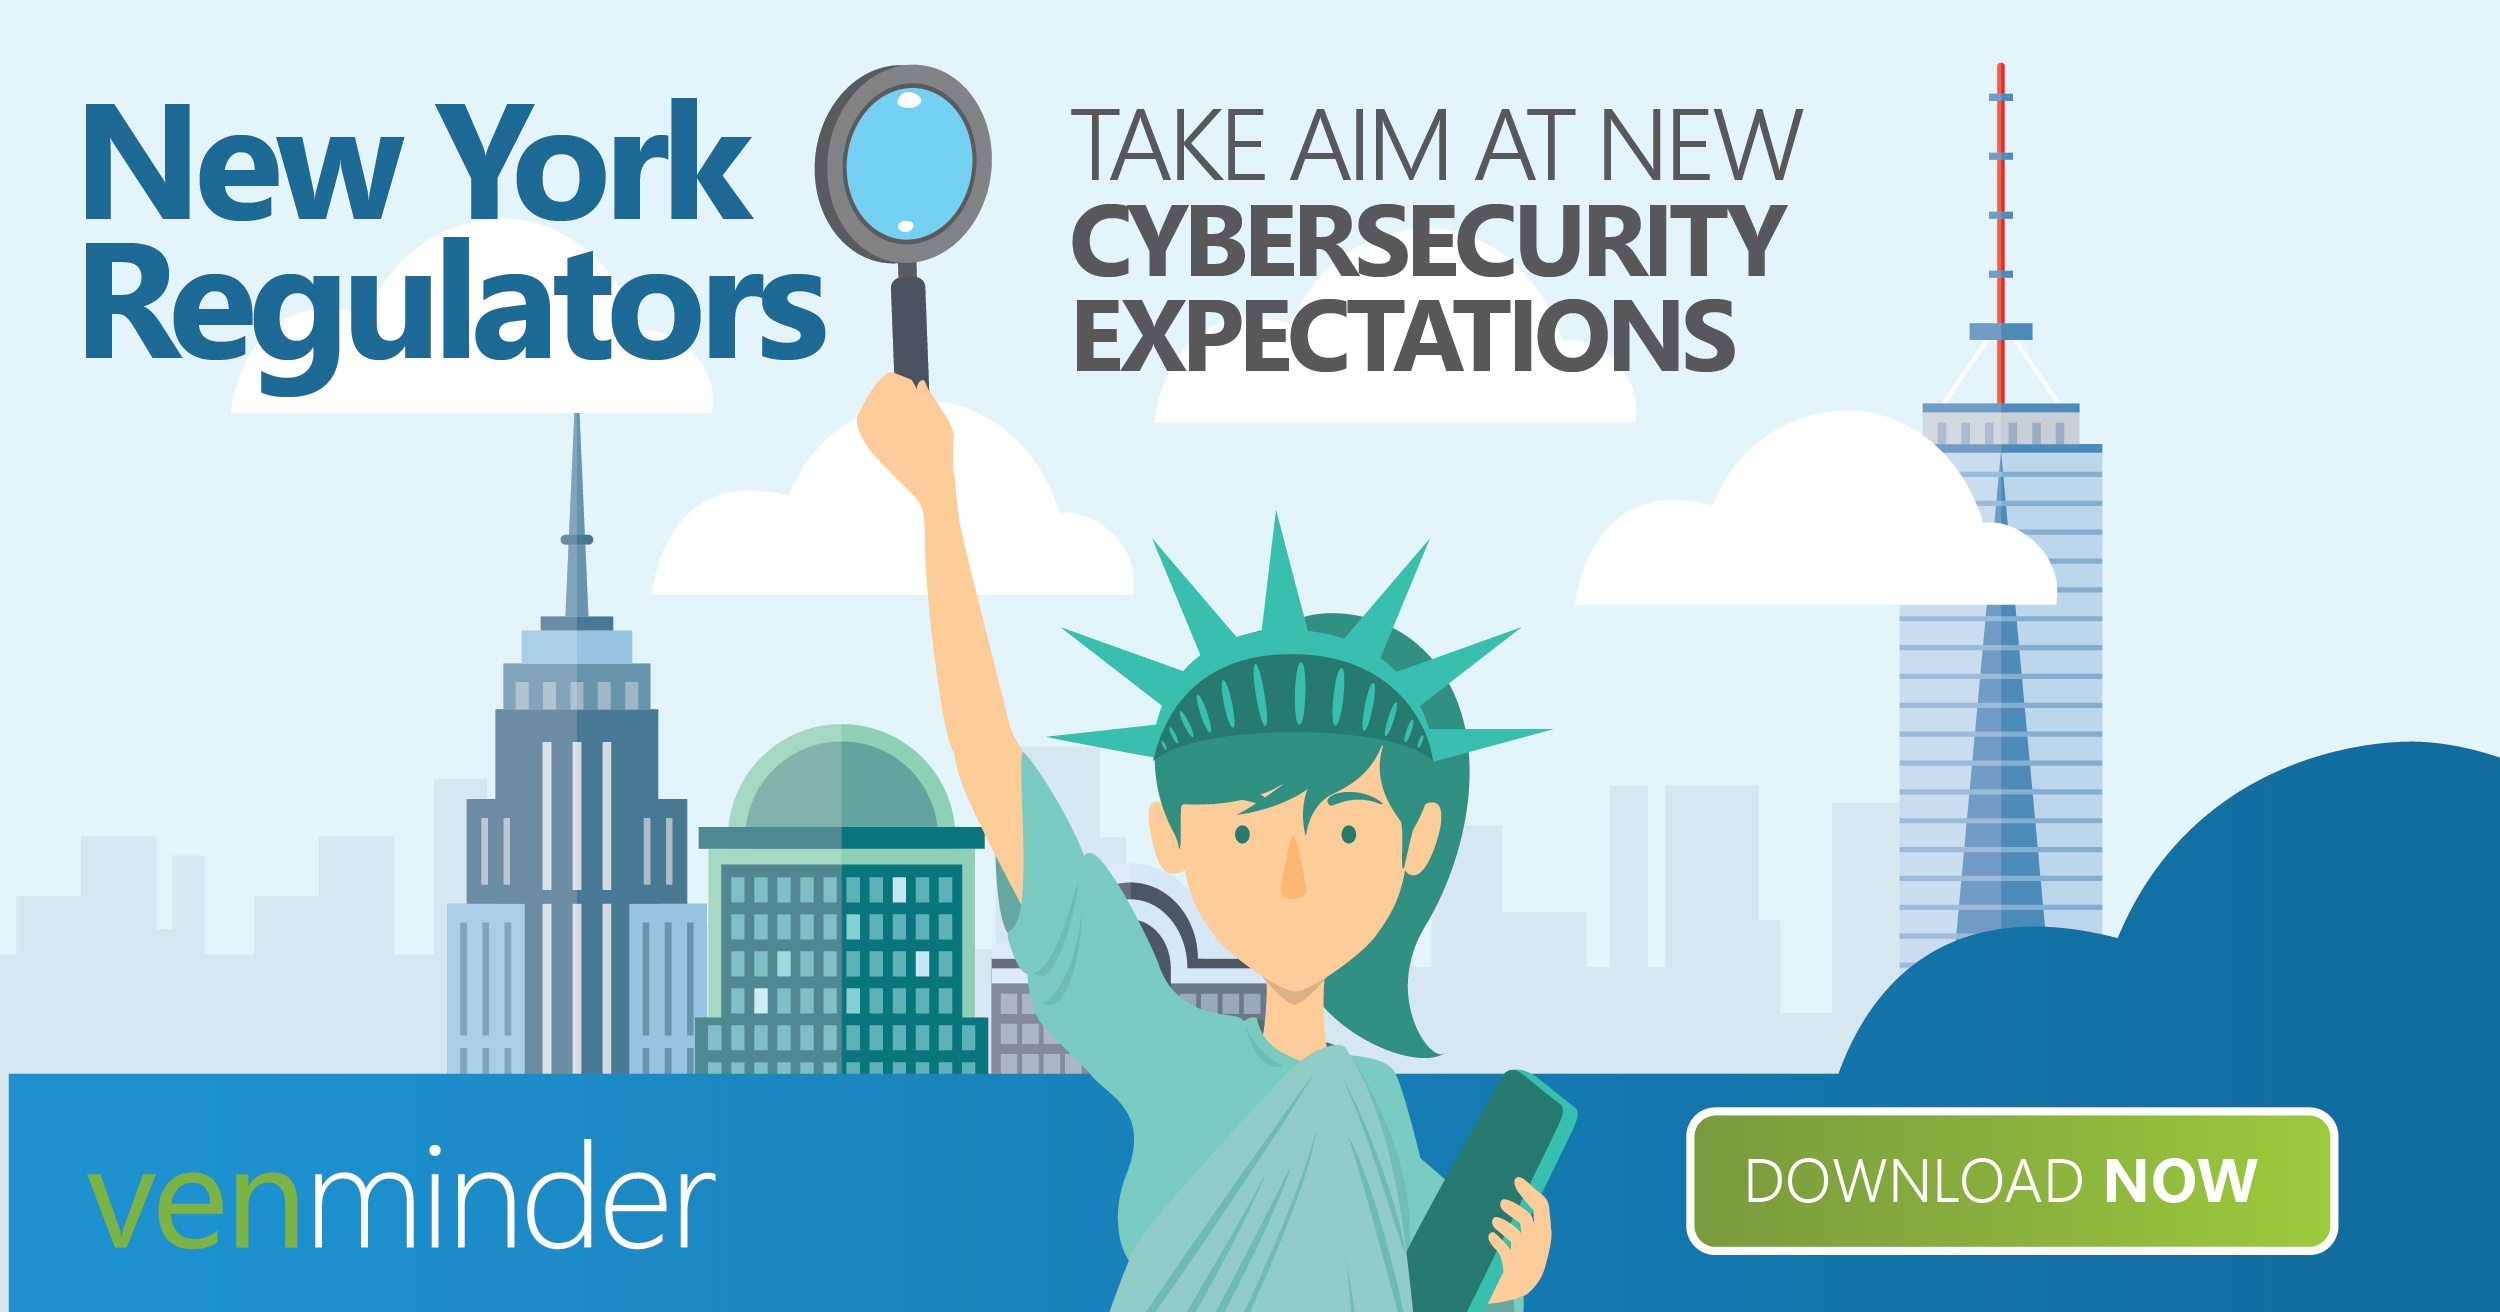 nydfs cyber security expectations   regulations infographic